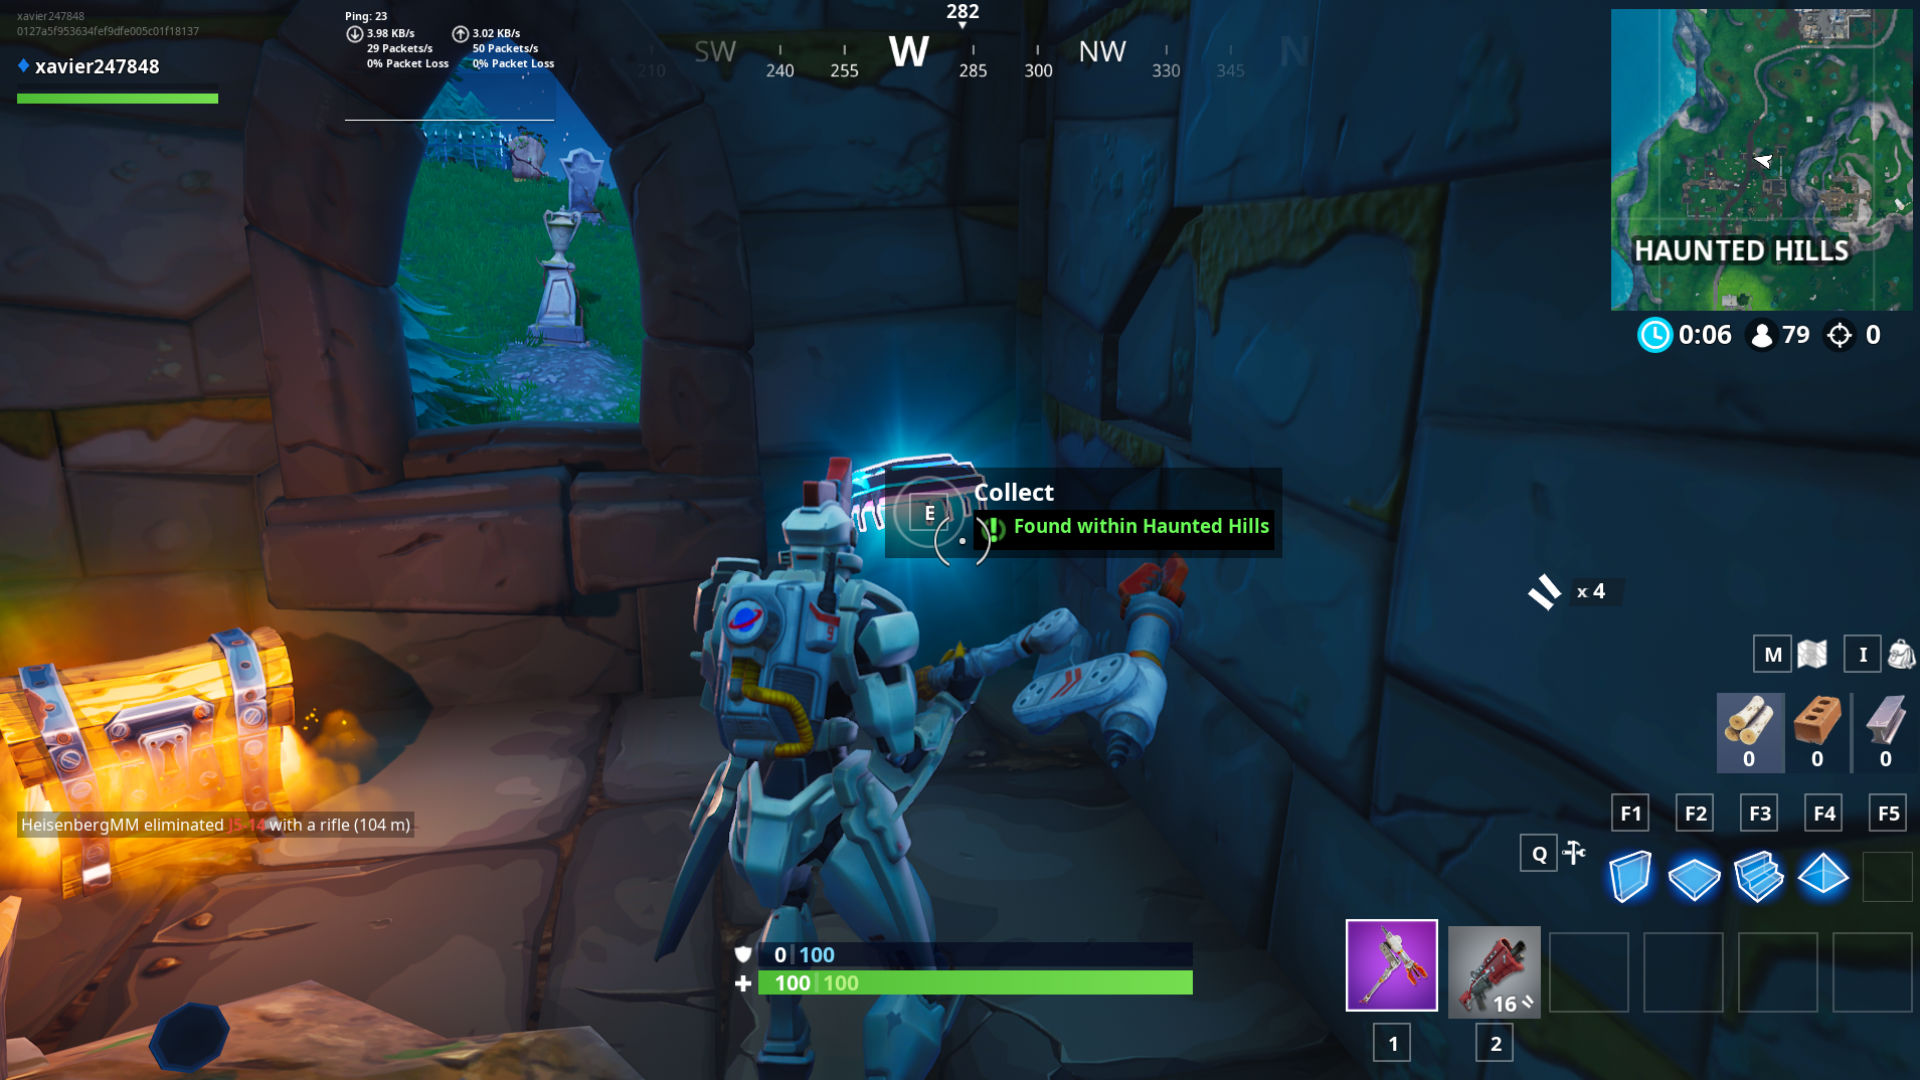 Fortnite Fortbyte #55 Location - Found Within Haunted Hills